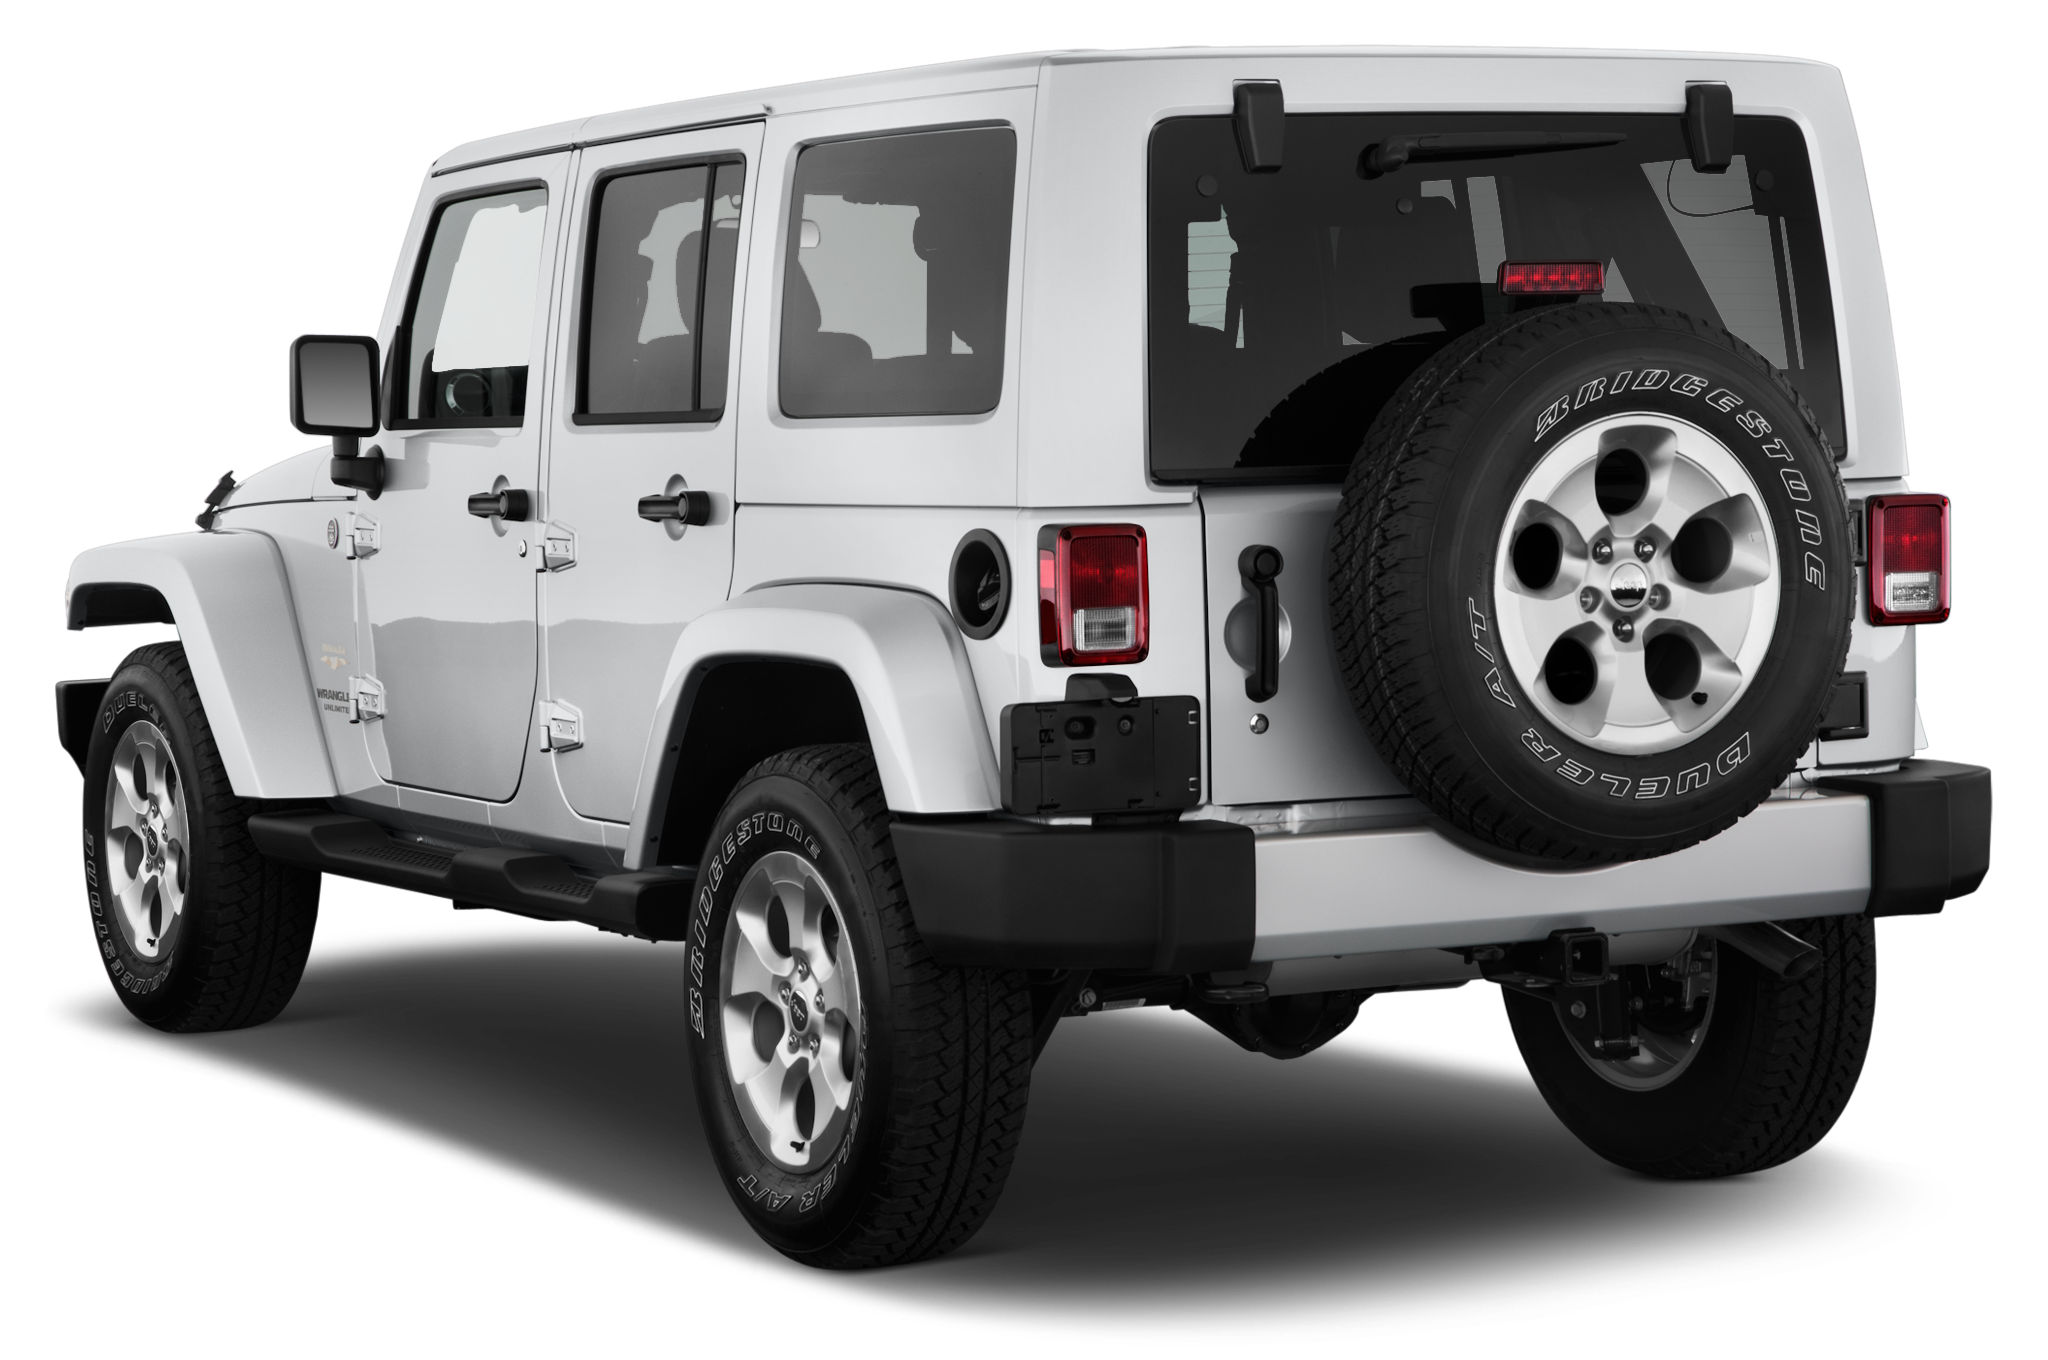 steering wrangler suv reviews rubicon jeep motor en canada cars rating unlimited trend and wheel